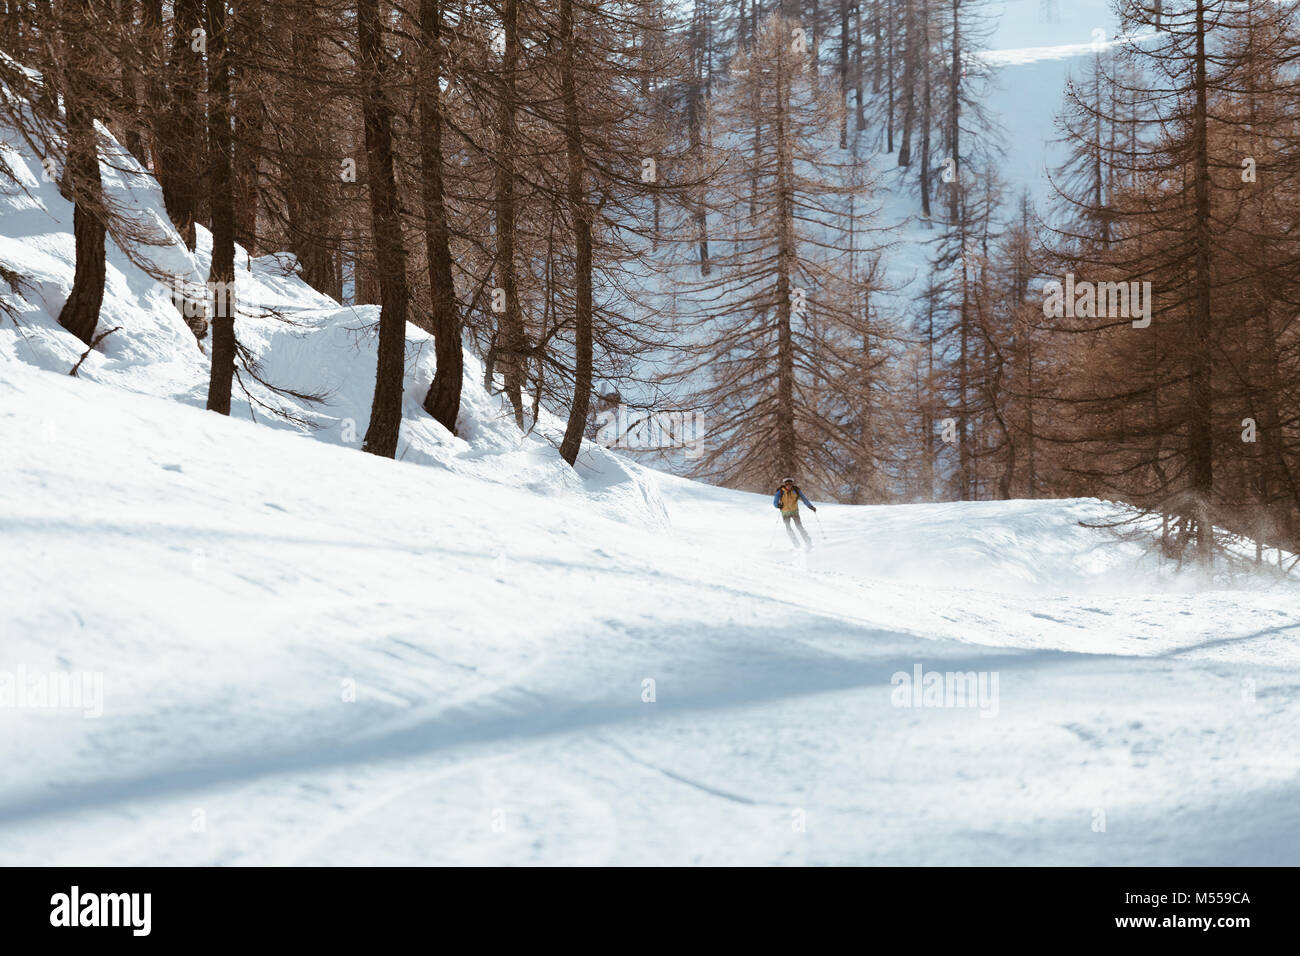 Skier skiing down the slope in the forest - Downhill in high mountains. - Stock Image